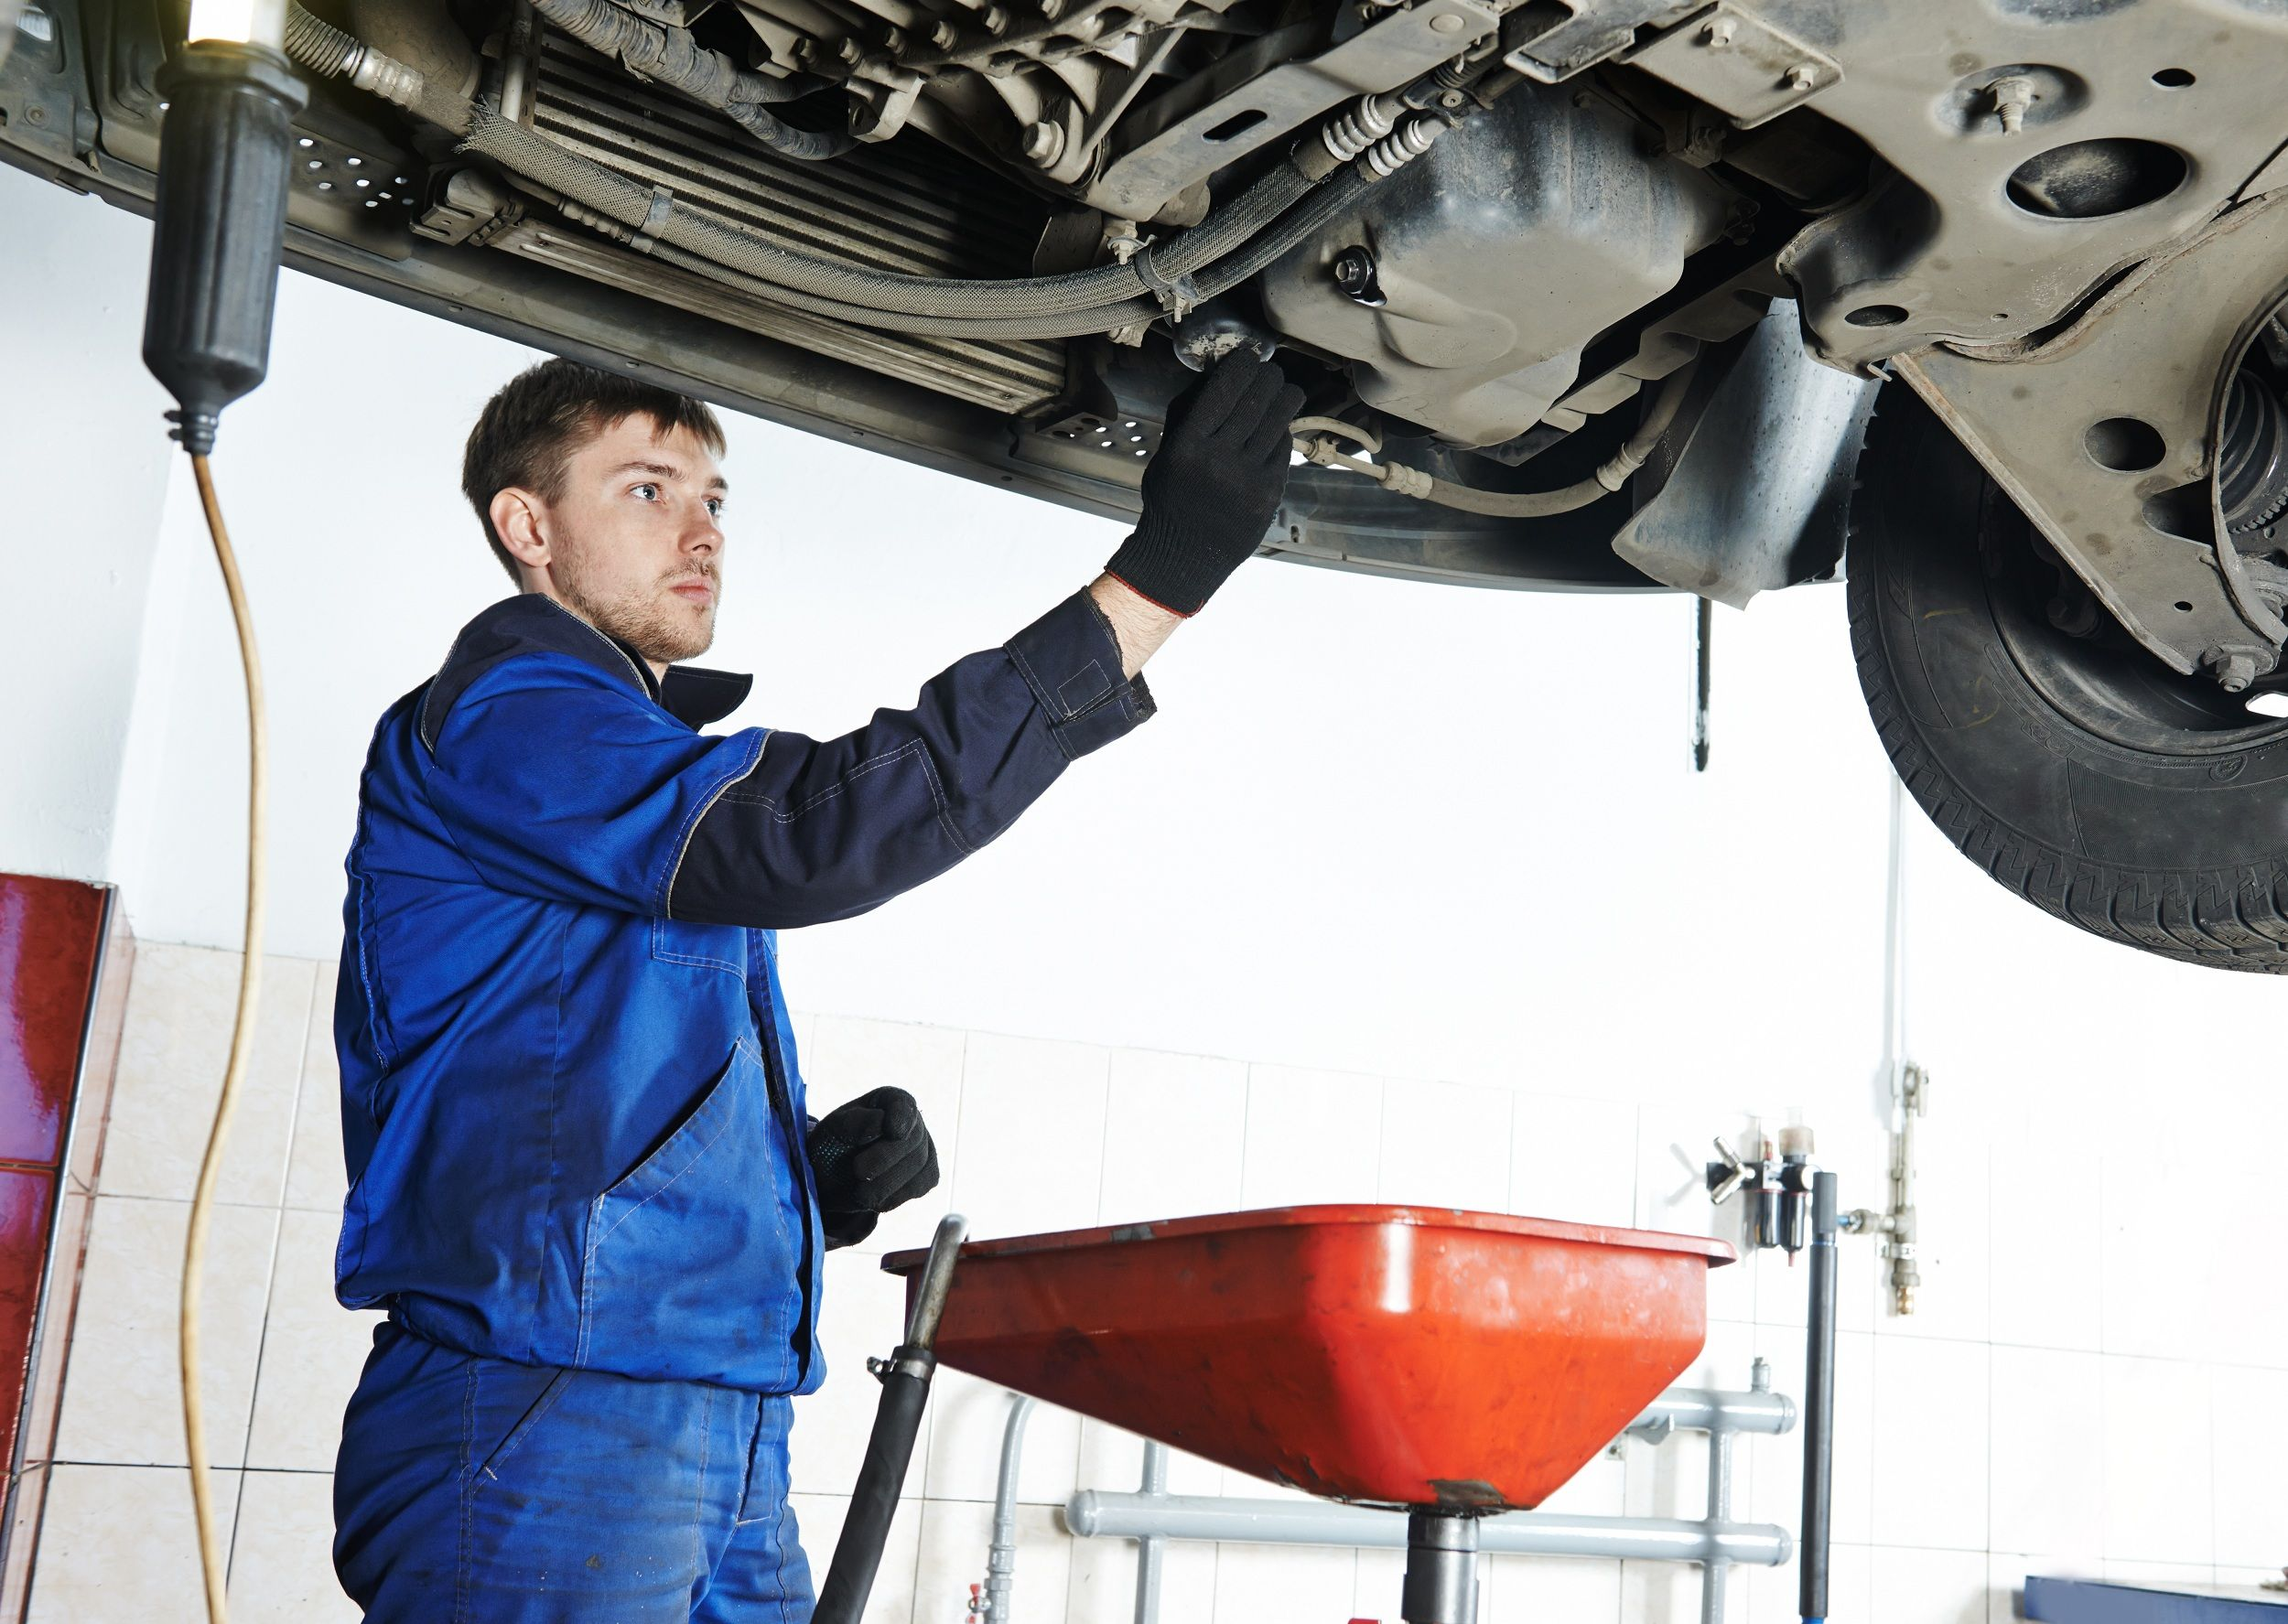 [FREE] Checklist: 8 elements you should check during an inspection of your car